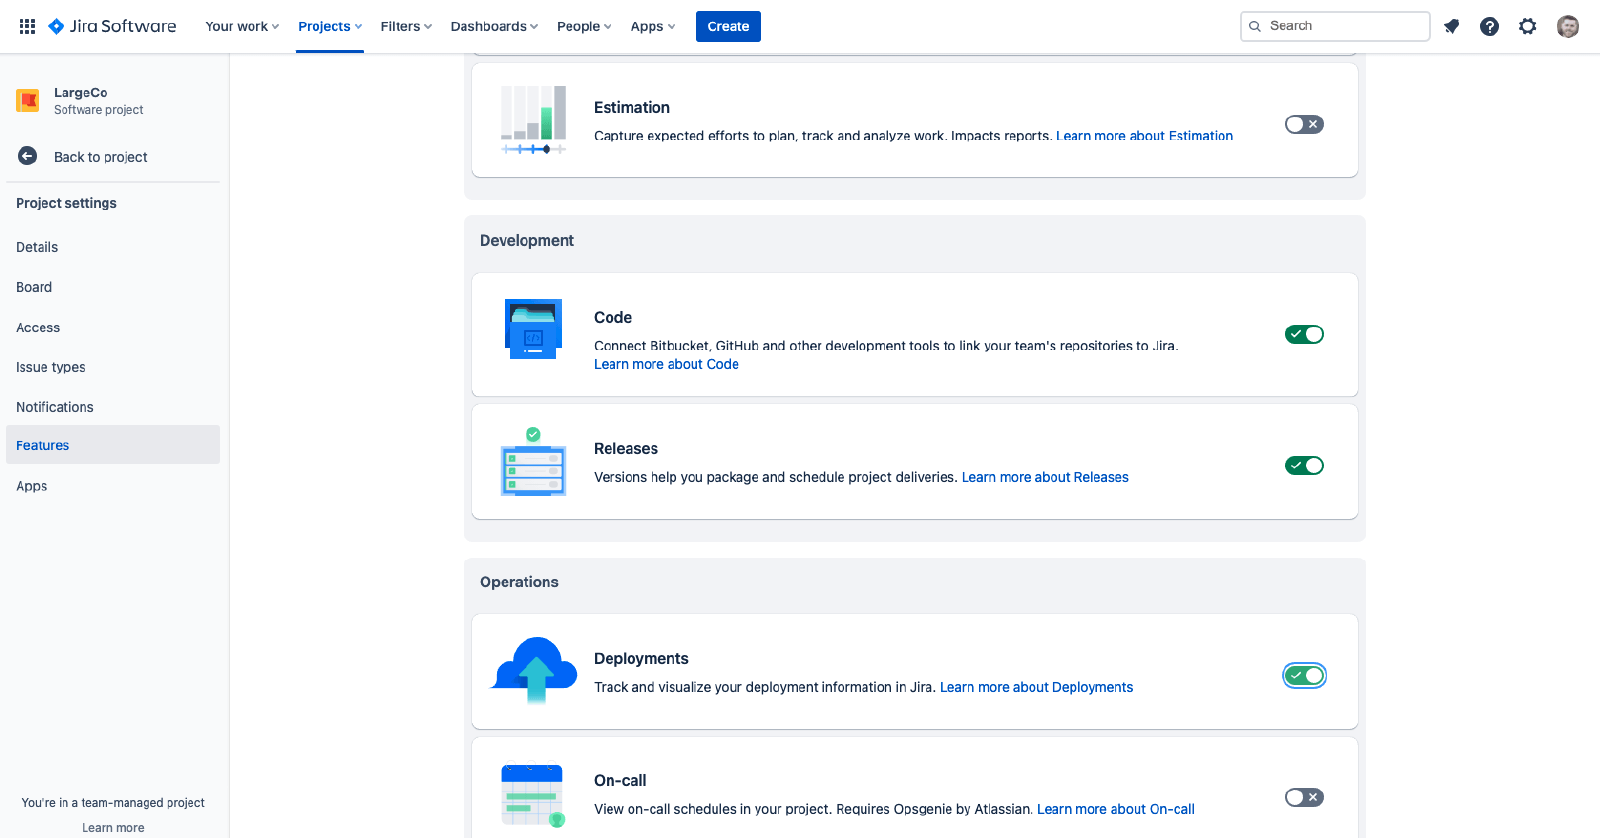 Jira Software Projects